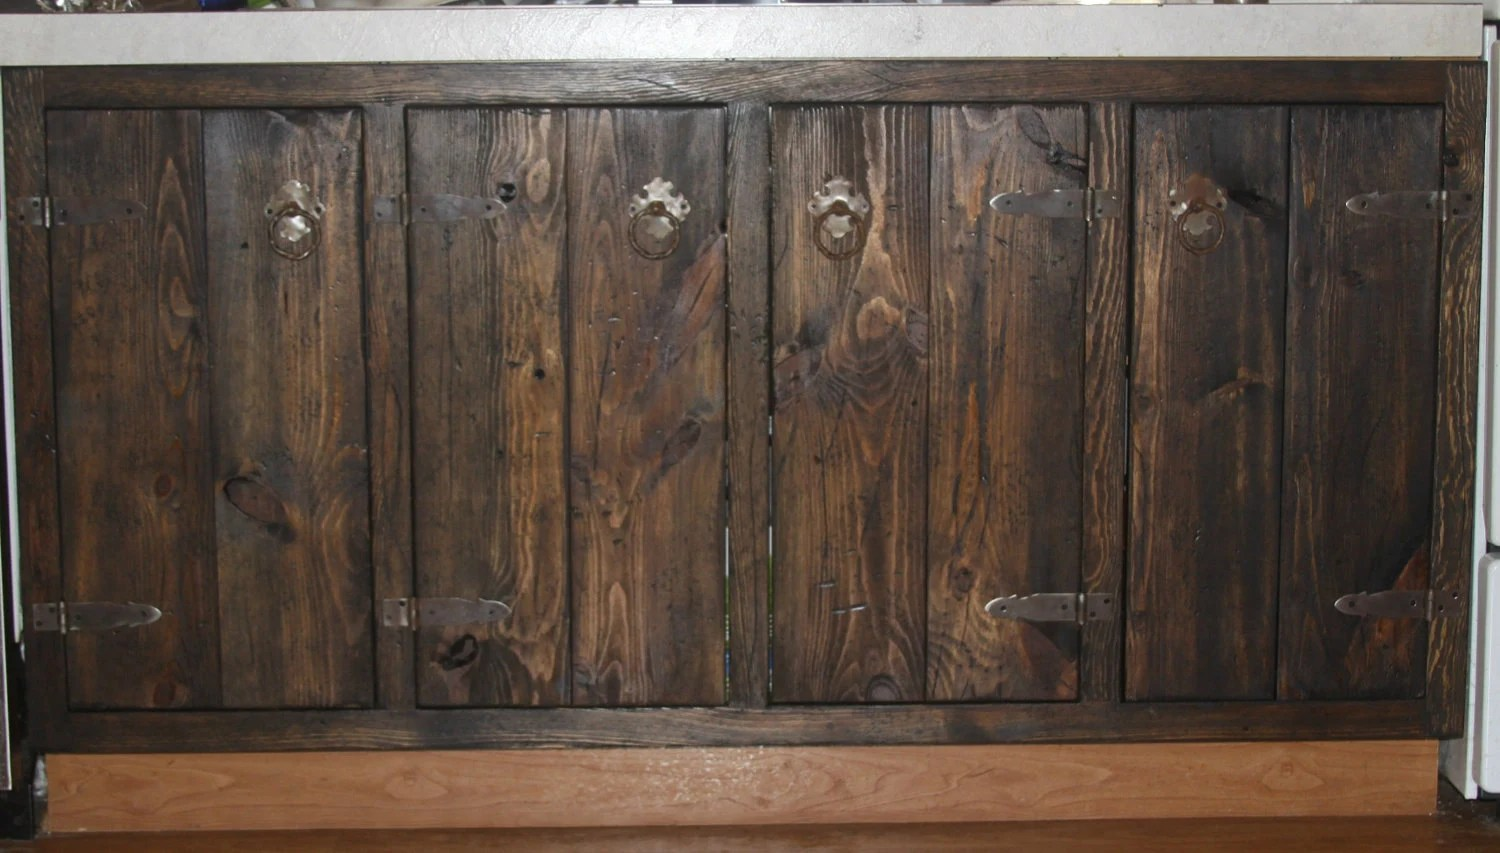 medieval rustic custom cabinets face rustic kitchen cabinets zoom